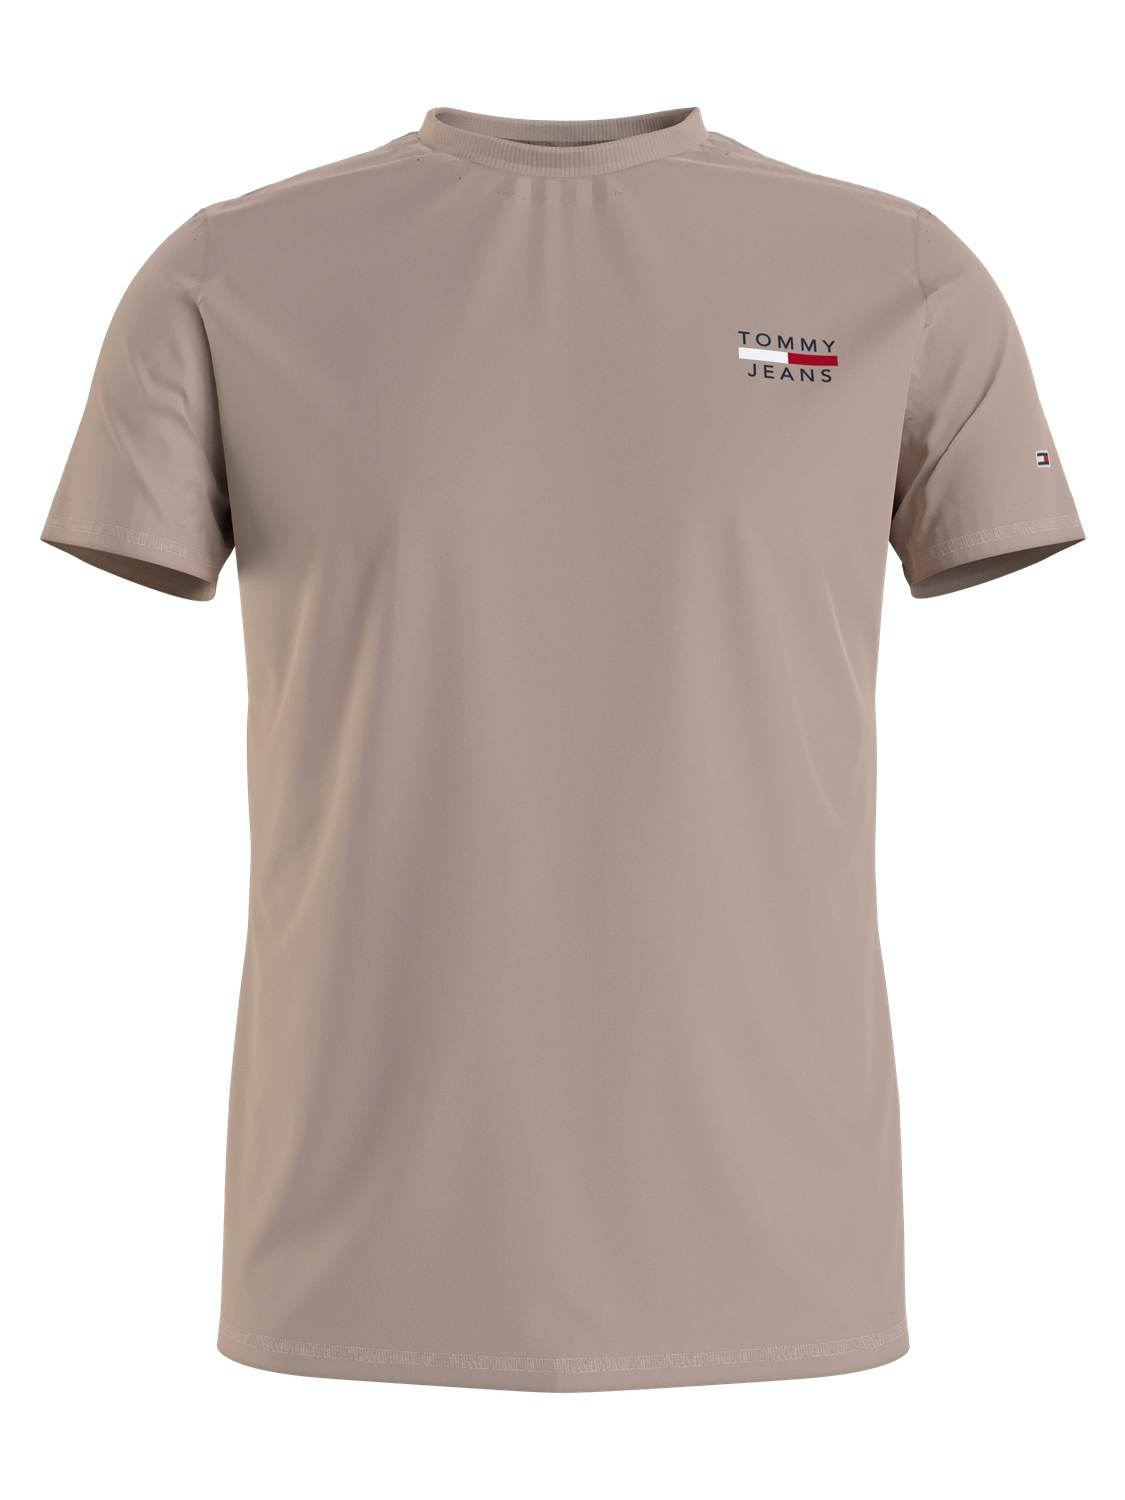 TOMMY HILFIGER T-SHIRT CHEST LOGO SOFT BEIGE | GATE 36 Hobro